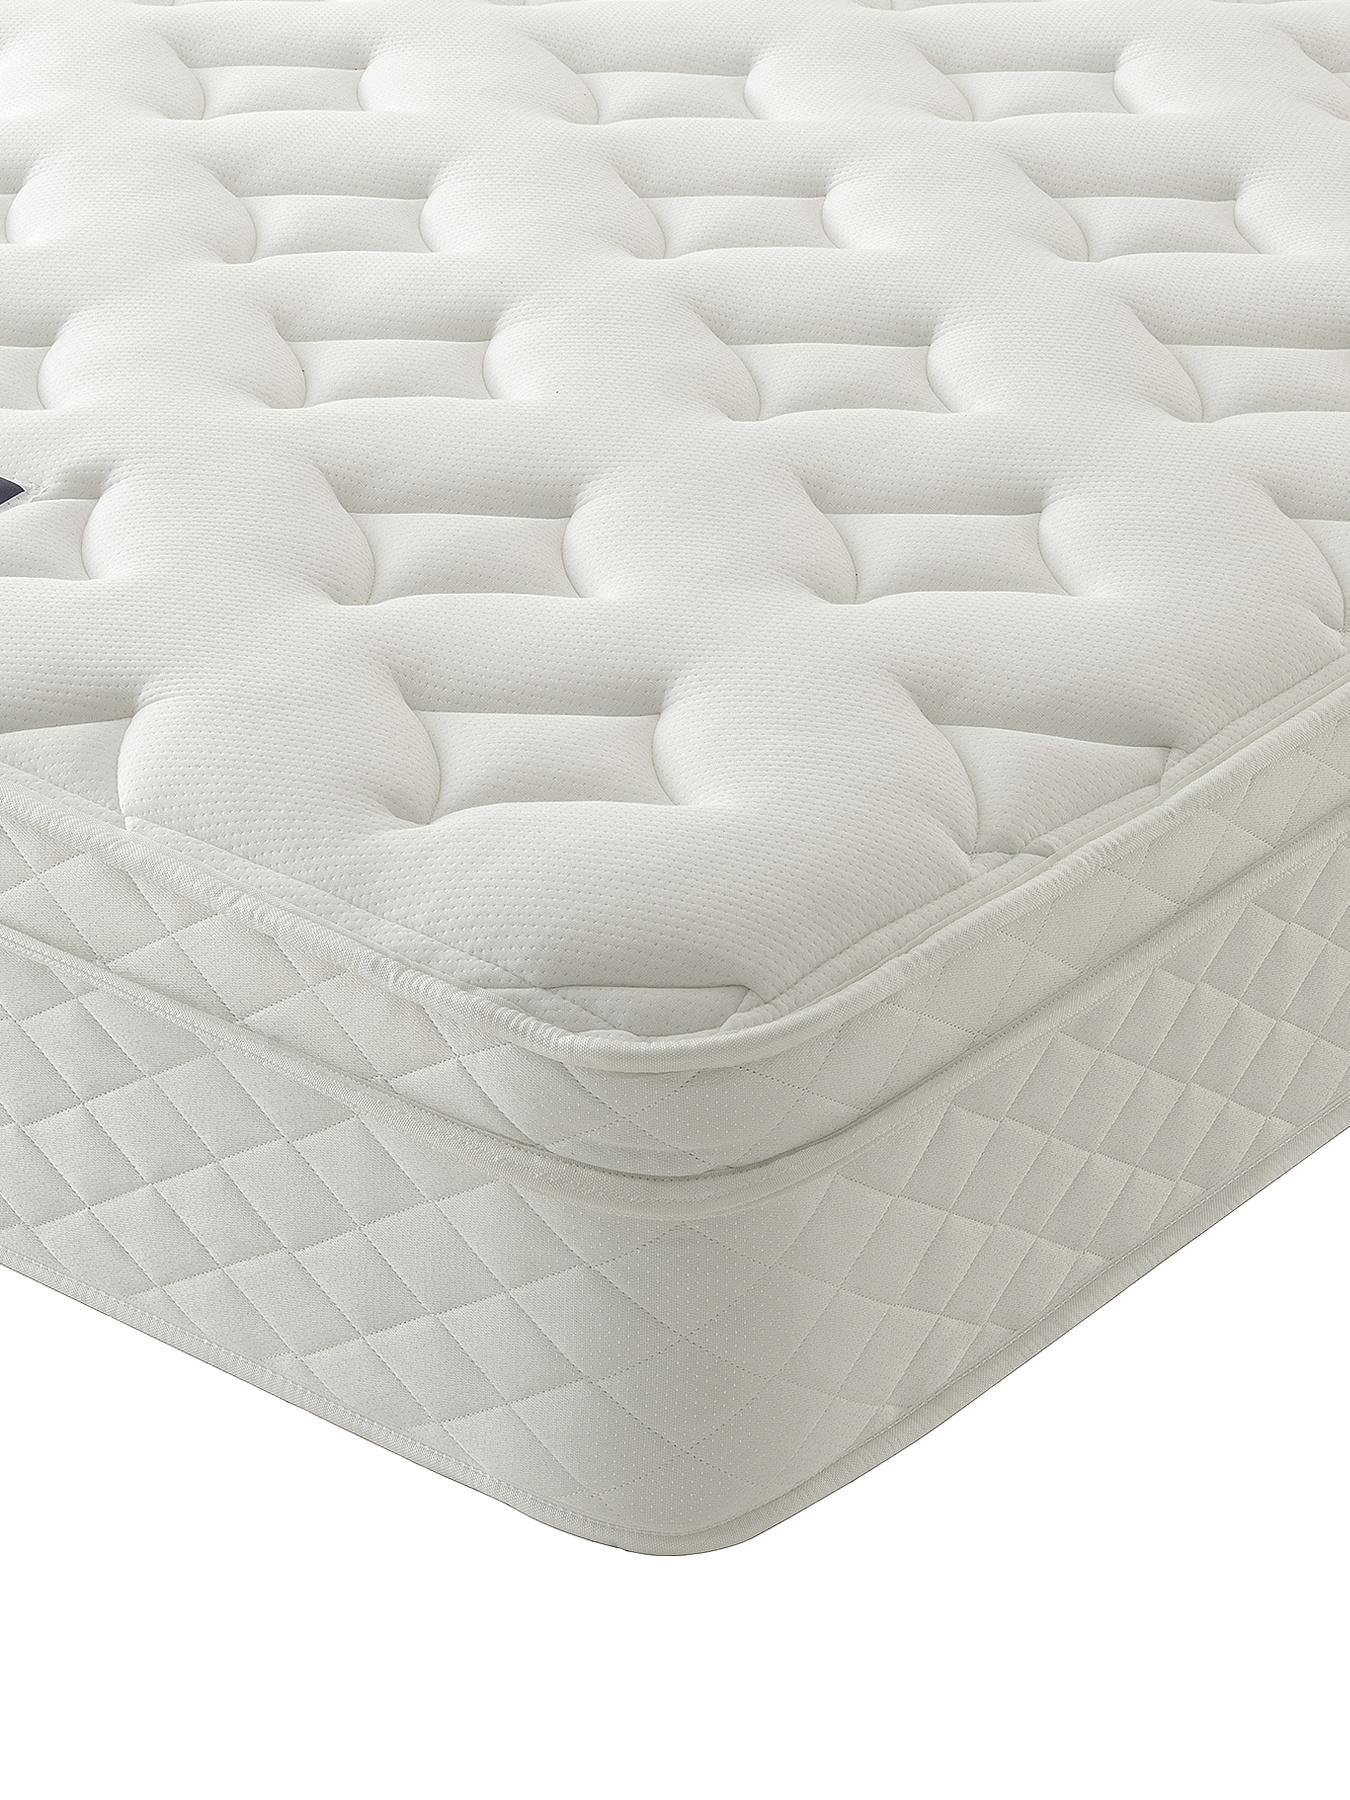 Silentnight Miracoil 3 Luxury Memory Cushioned Top Mattress with Optional Next Day Delivery